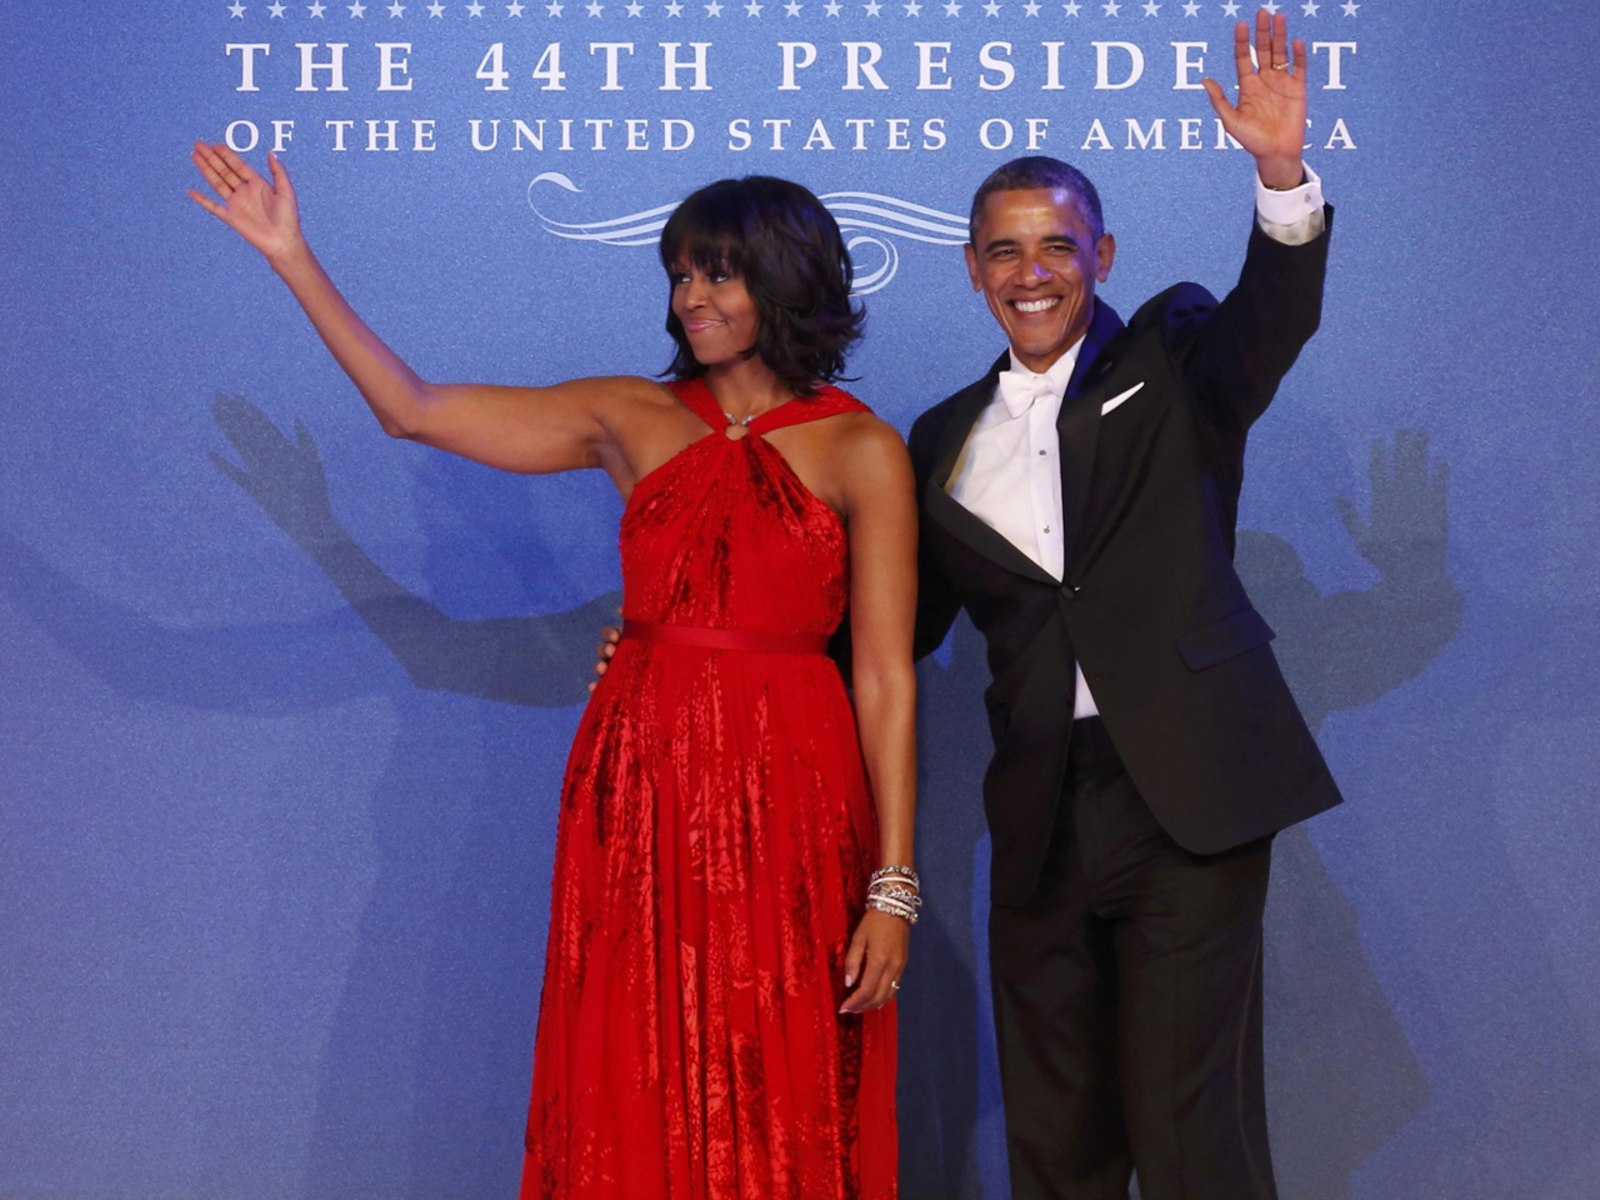 Image: U.S. President Barack Obama and first lady Michelle Obama arrive at the Inaugural Ball in Washington